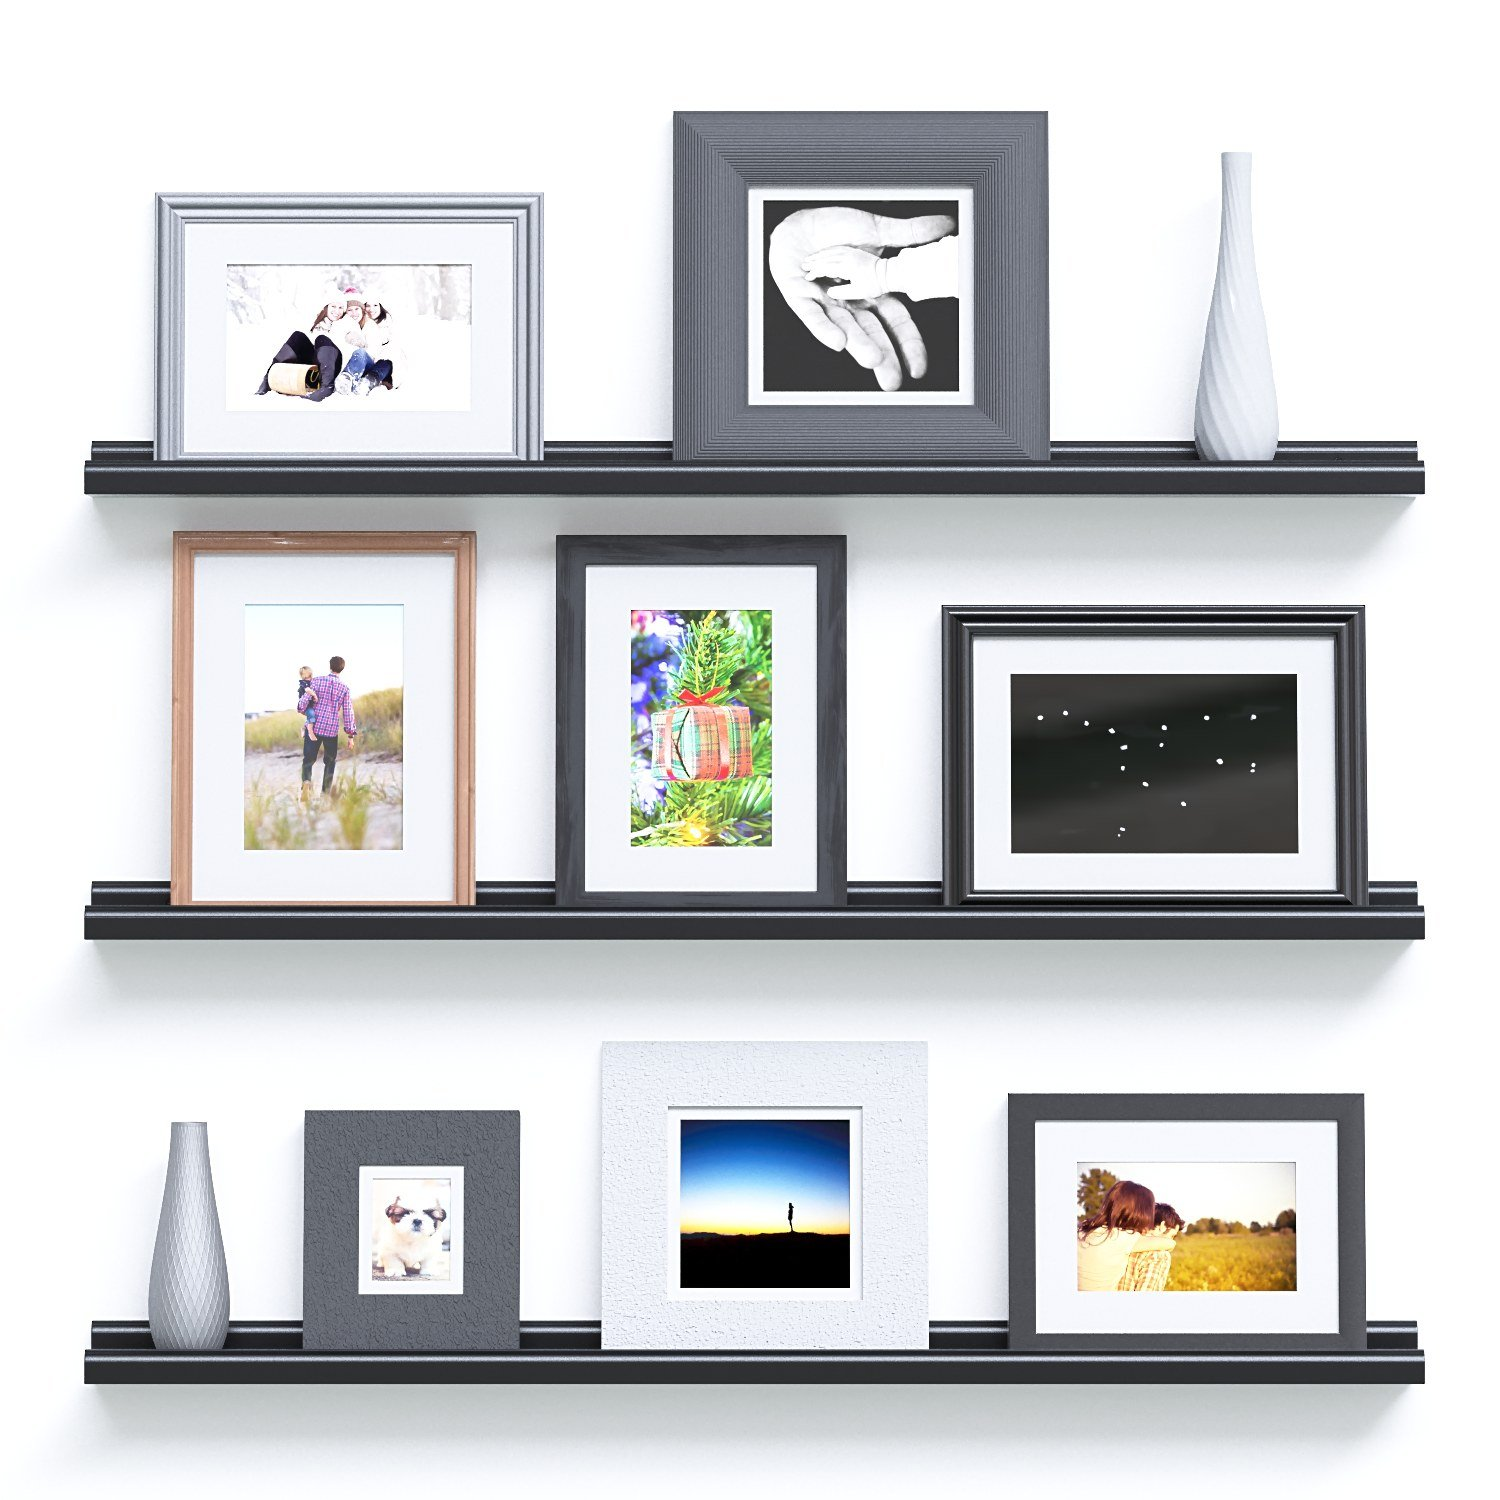 Wallniture Contemporary Floating Wall Shelf Ledge Picture Book Display Black 46 Inch Set of 2 by Wallniture (Image #3)